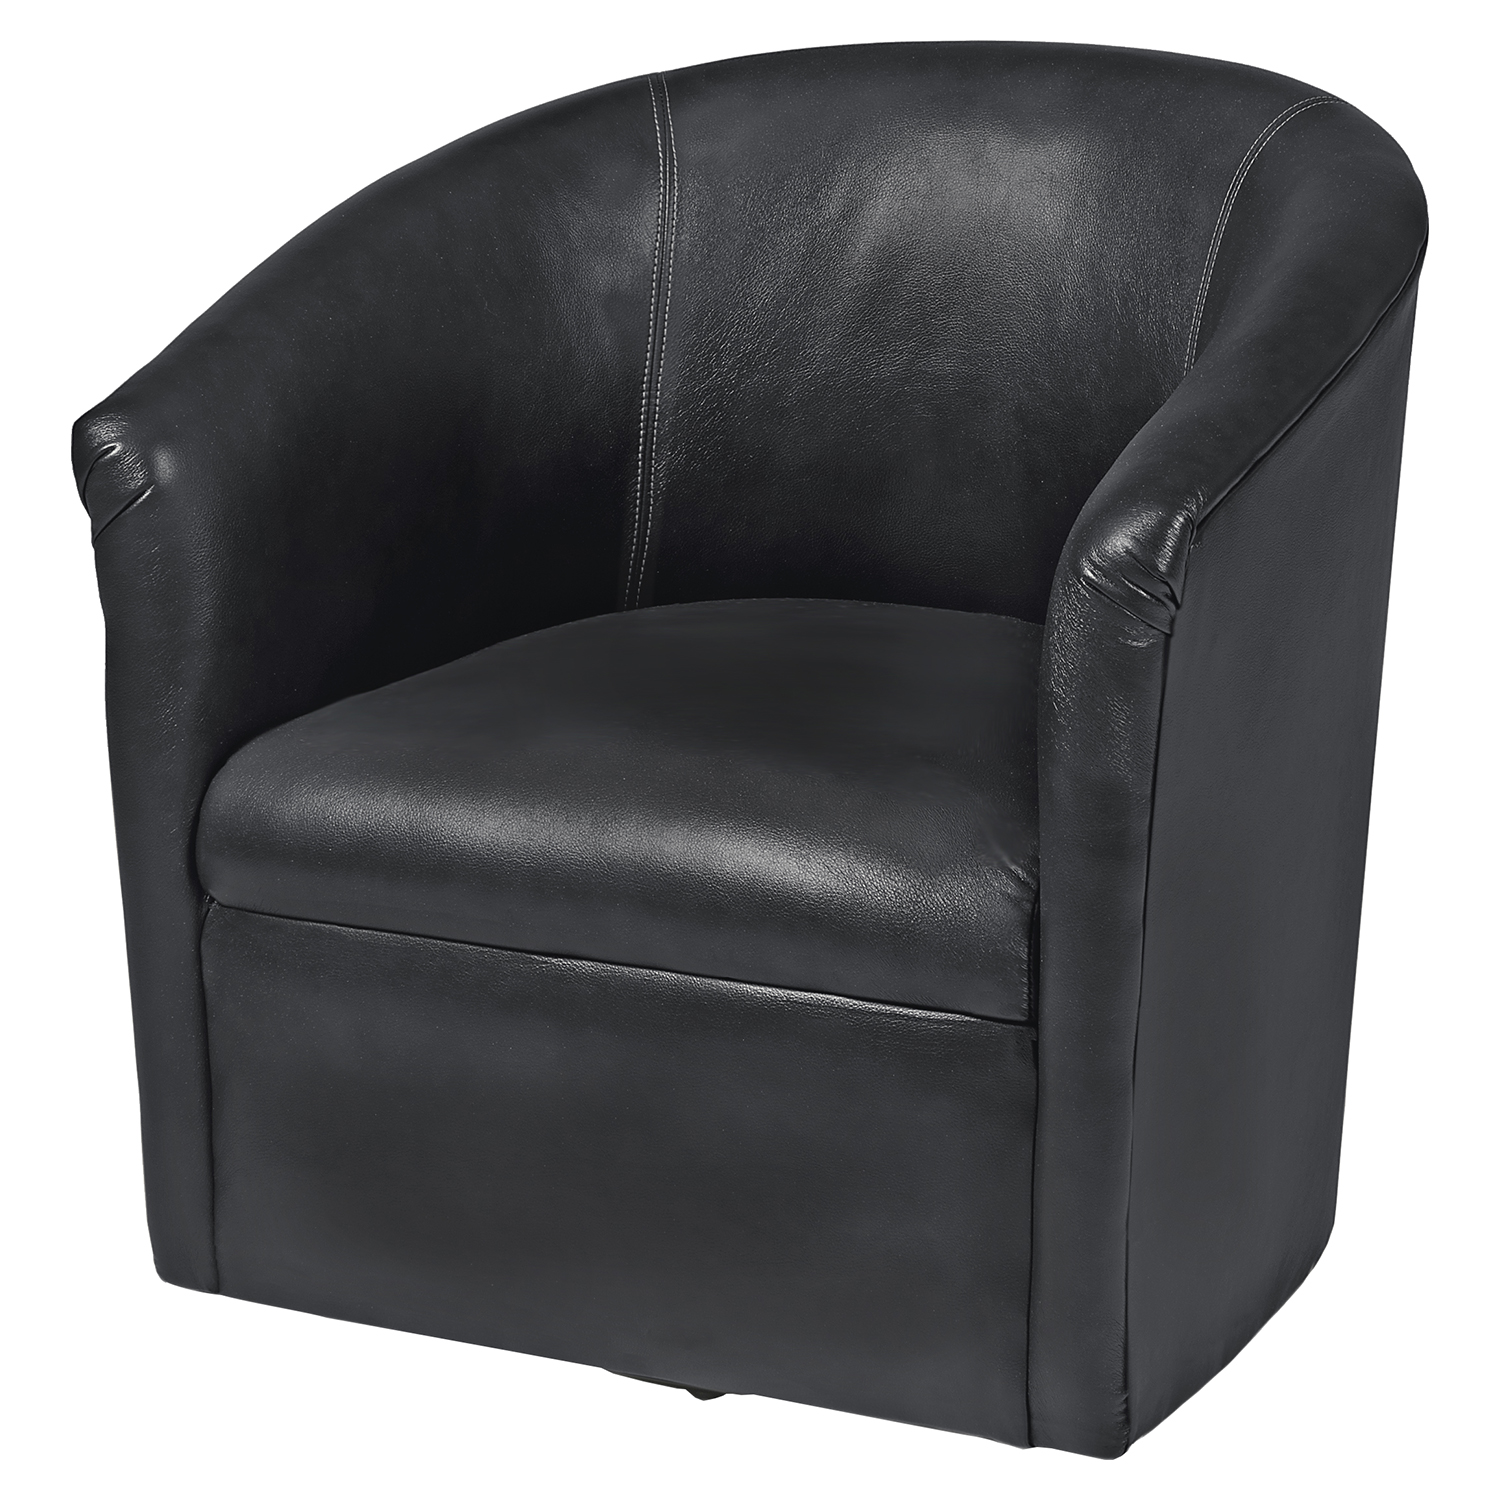 Draper Swivel Chair - Black